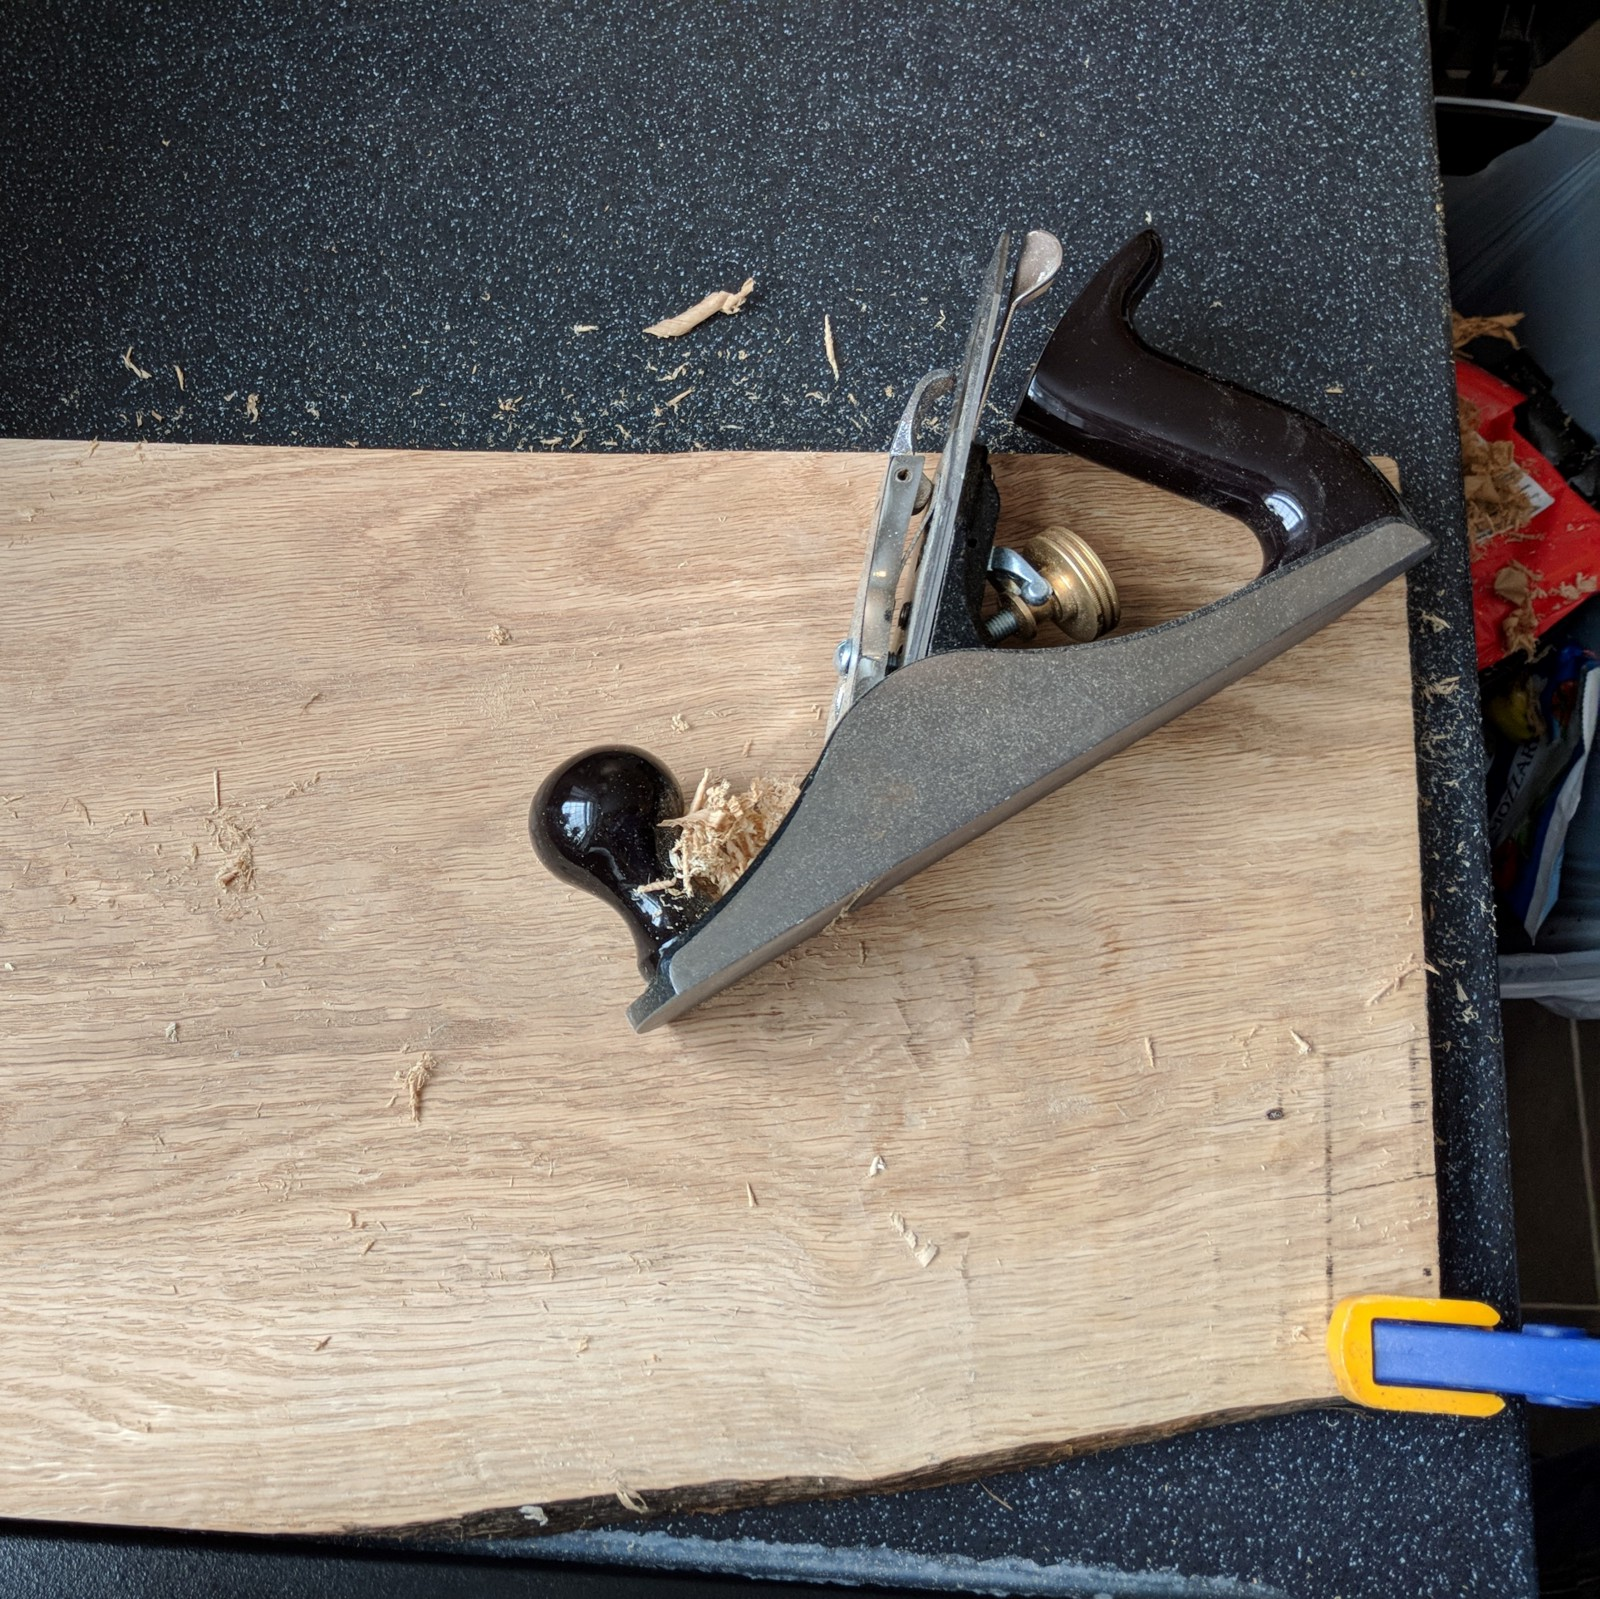 Making a Chopping Board - Flattening the board by hand.